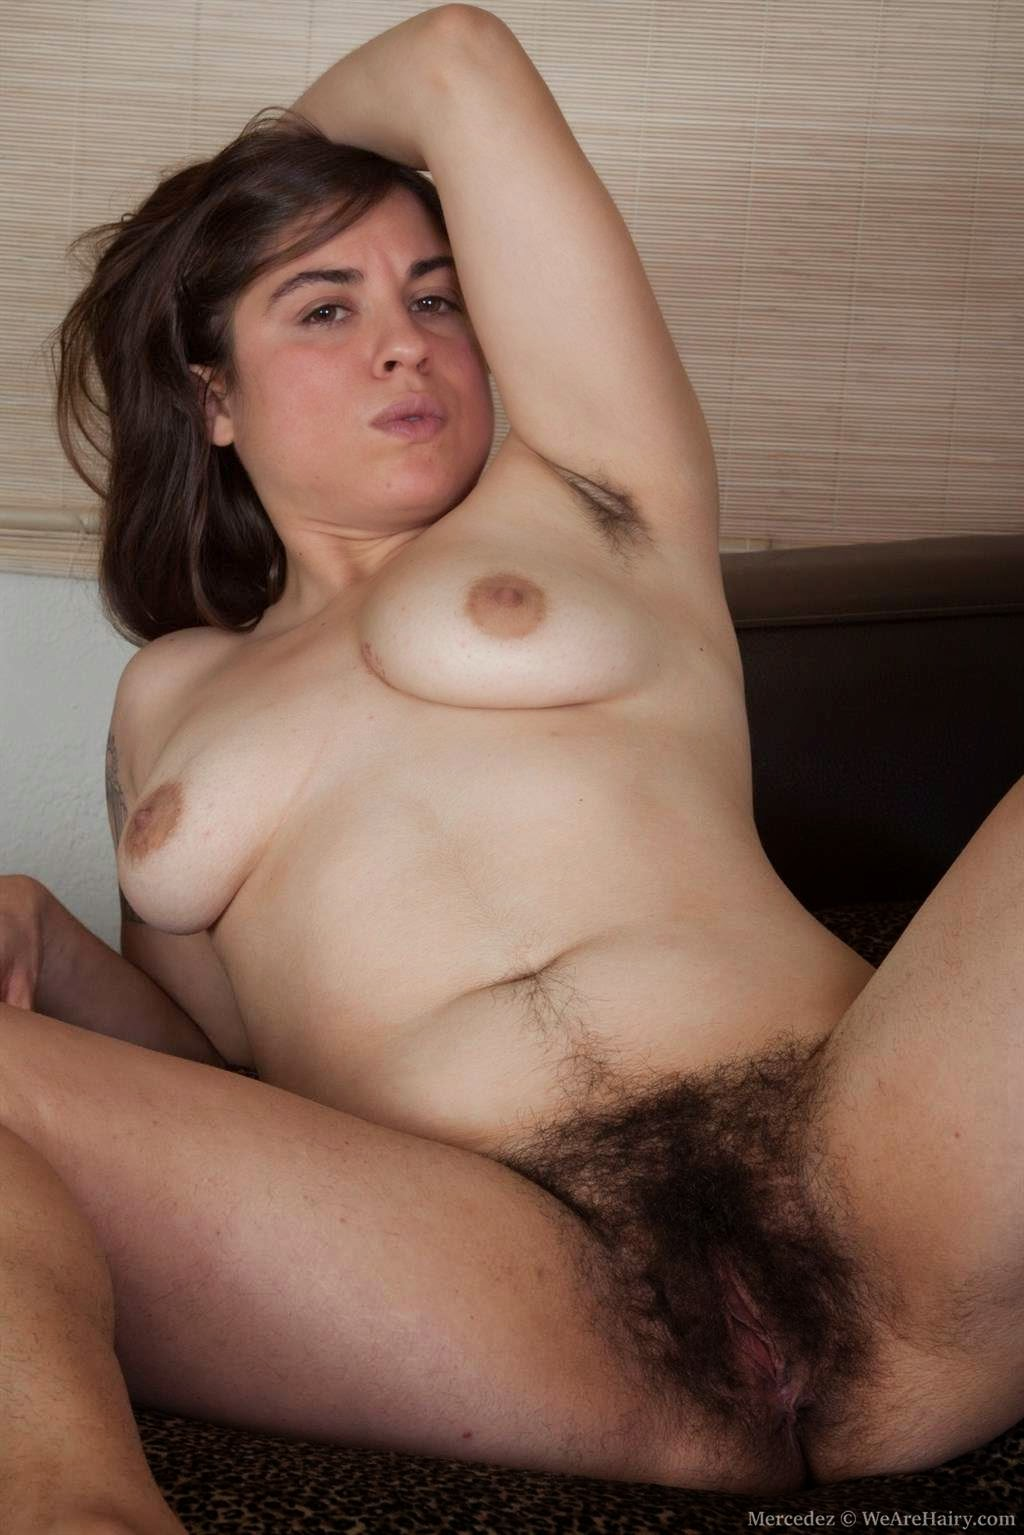 women Hairy armpit